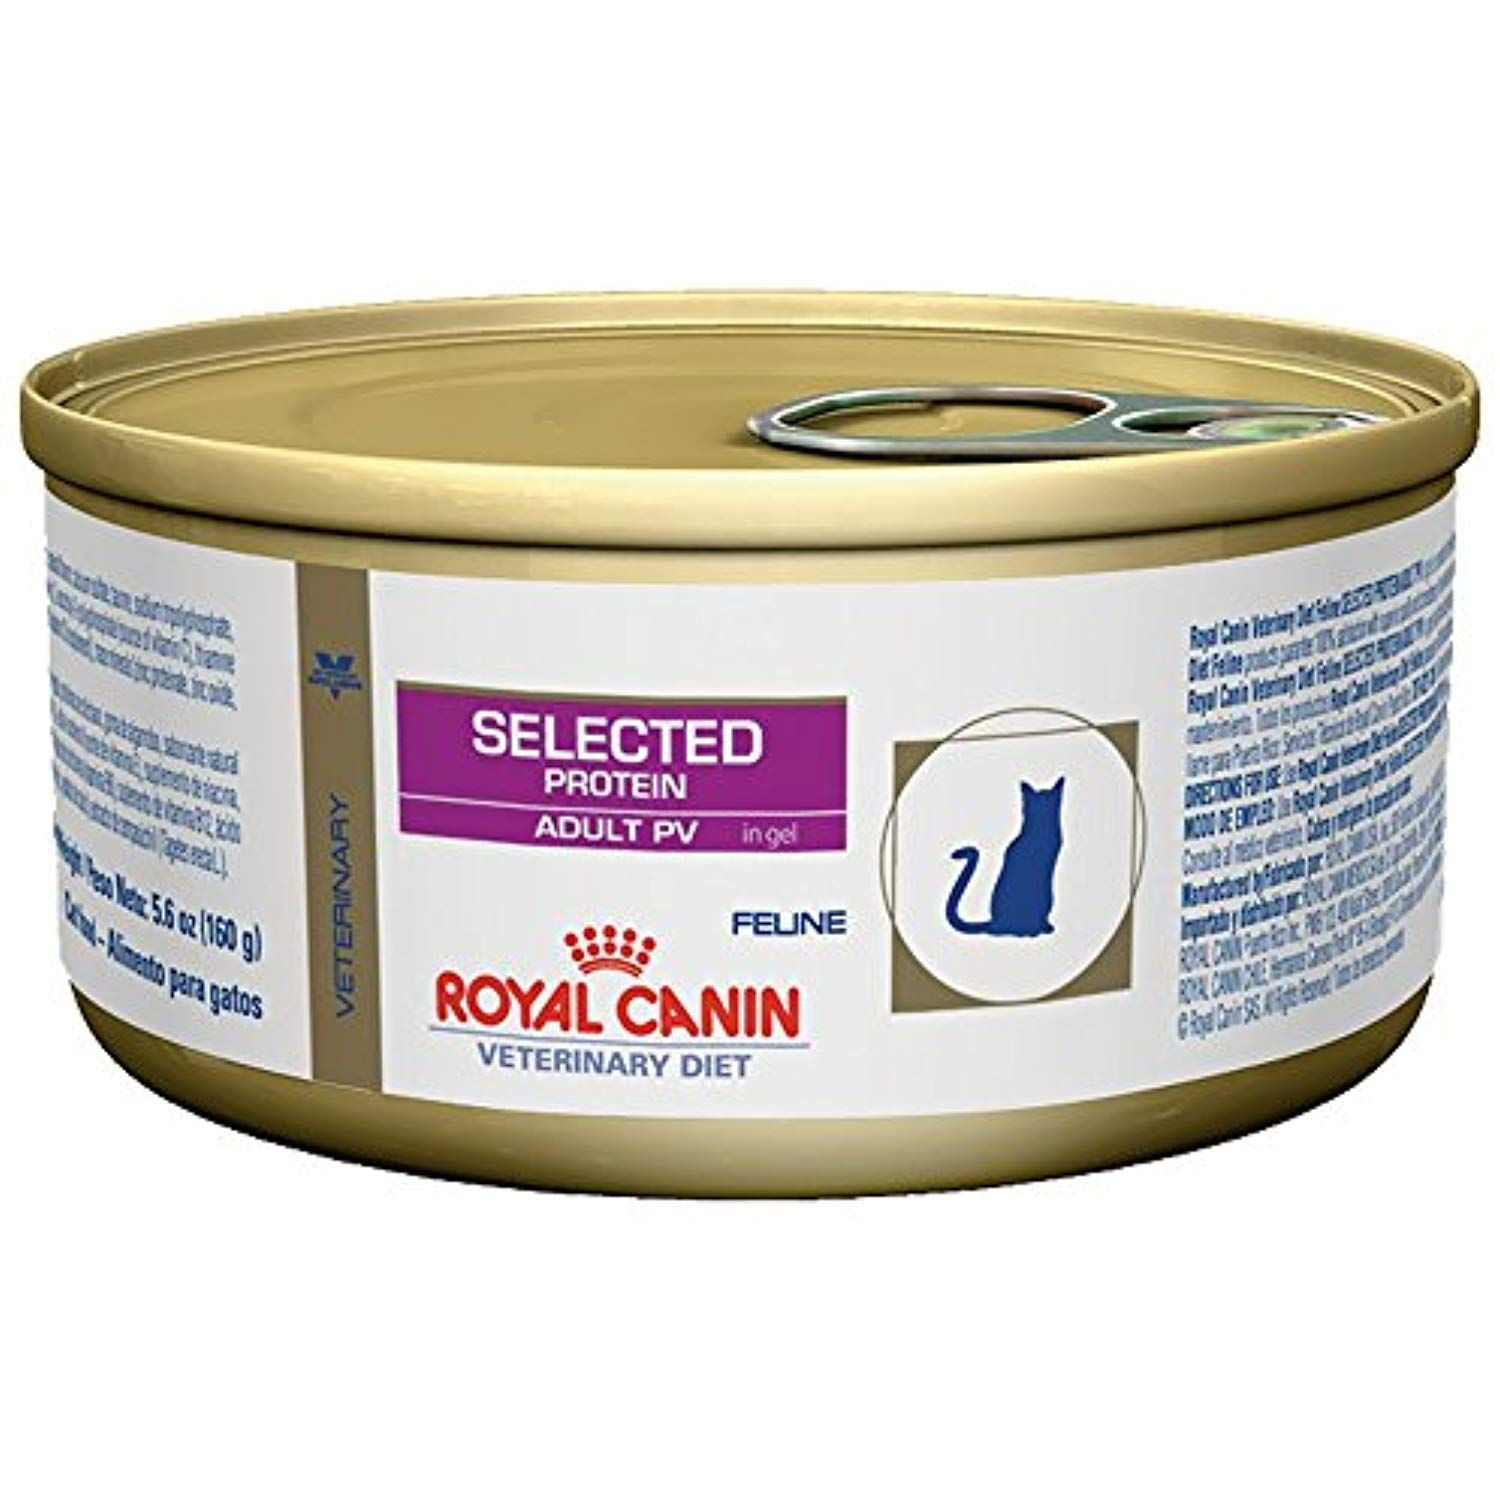 ROYAL CANIN Feline Selected Protein Adult PV Can (24/5.6